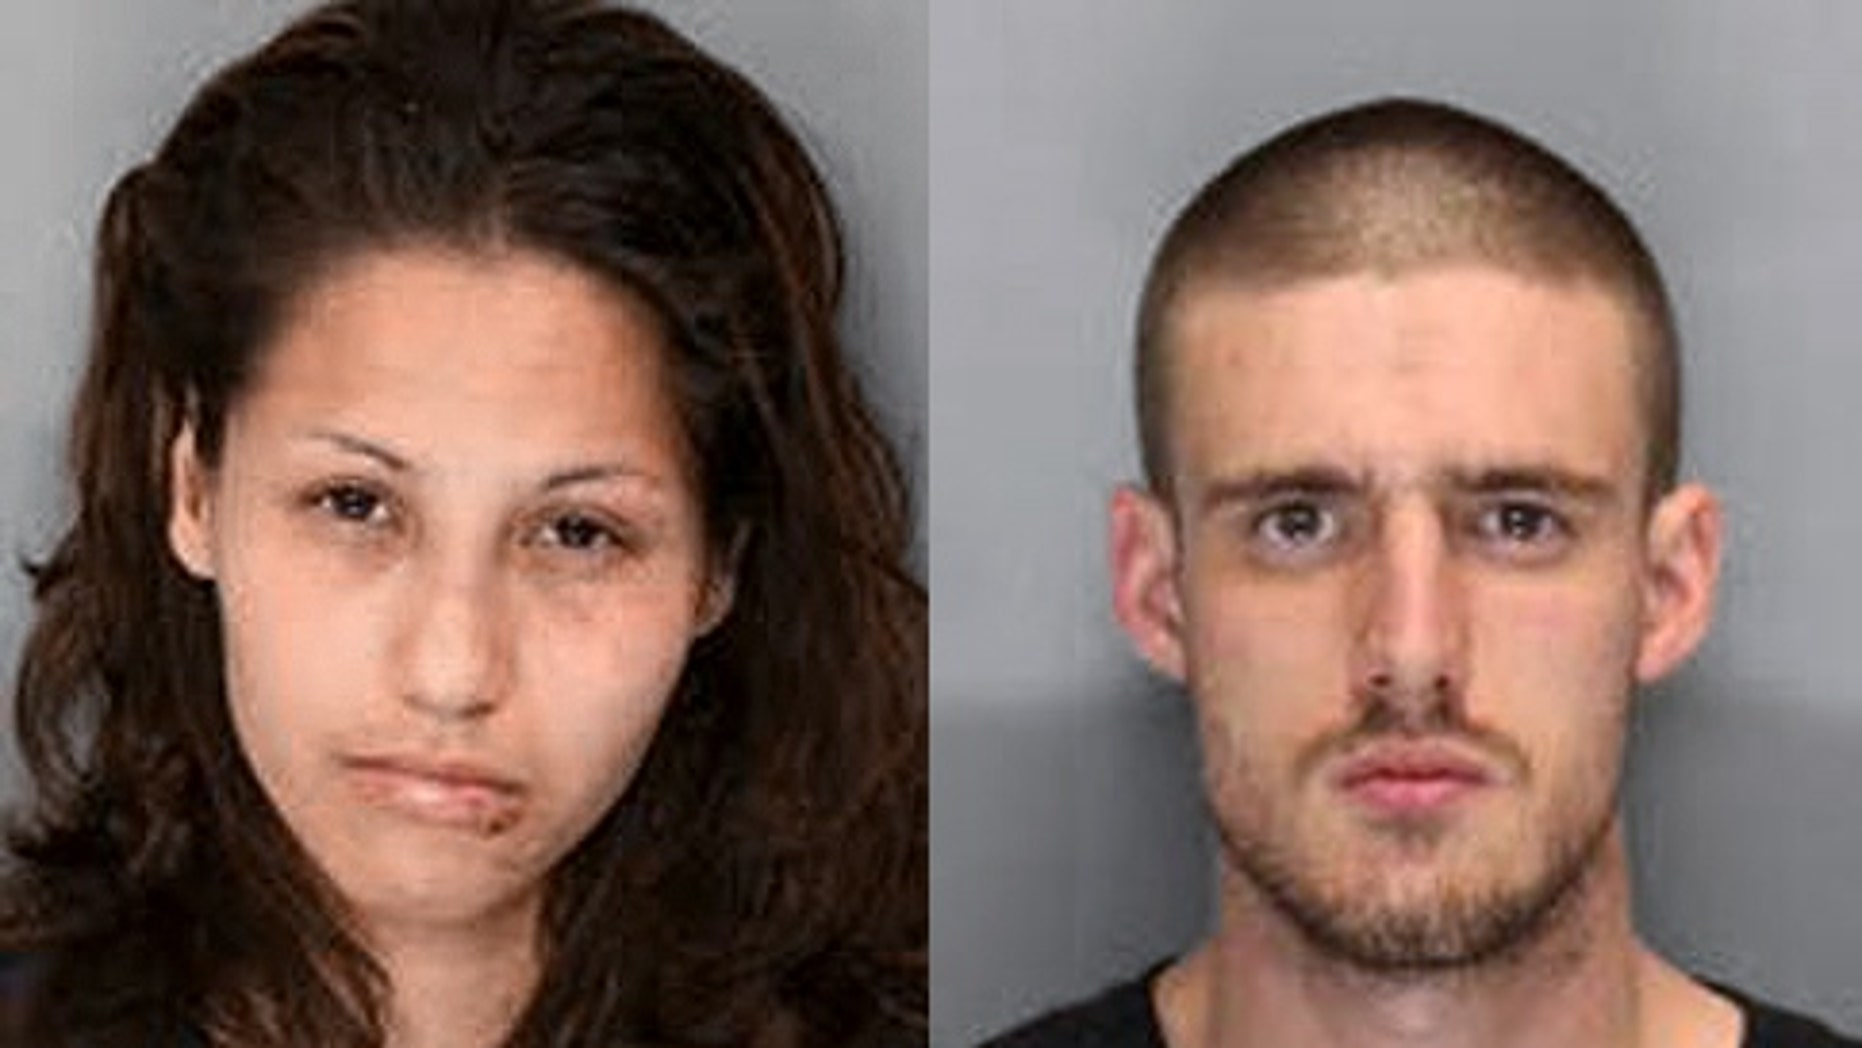 Cindy Marie Cantu, 24, and her boyfriend Kyle Erwin Skinner, 23, are in custody after allegedly locking a 3-year-old boy into a room and nailing the door shut.